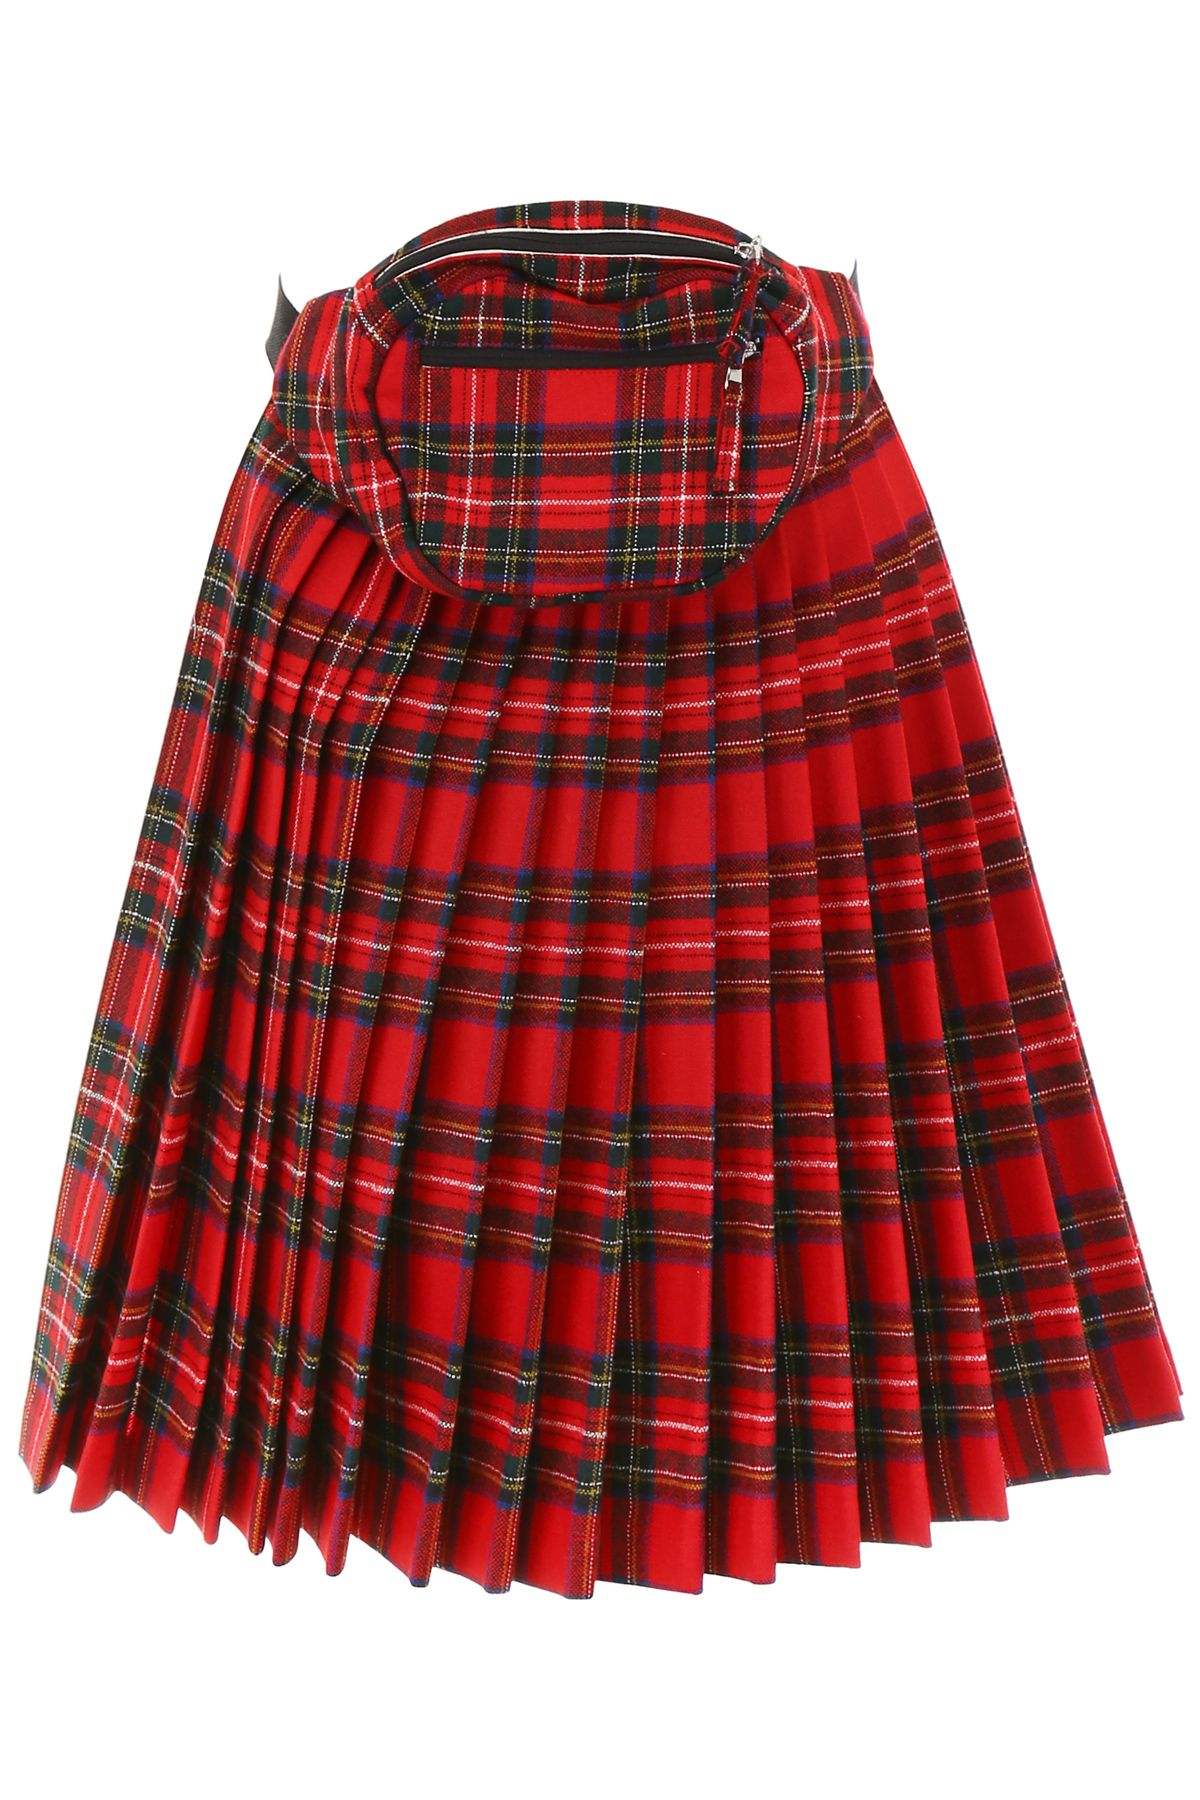 R13 Panel Skirt With Beltbag